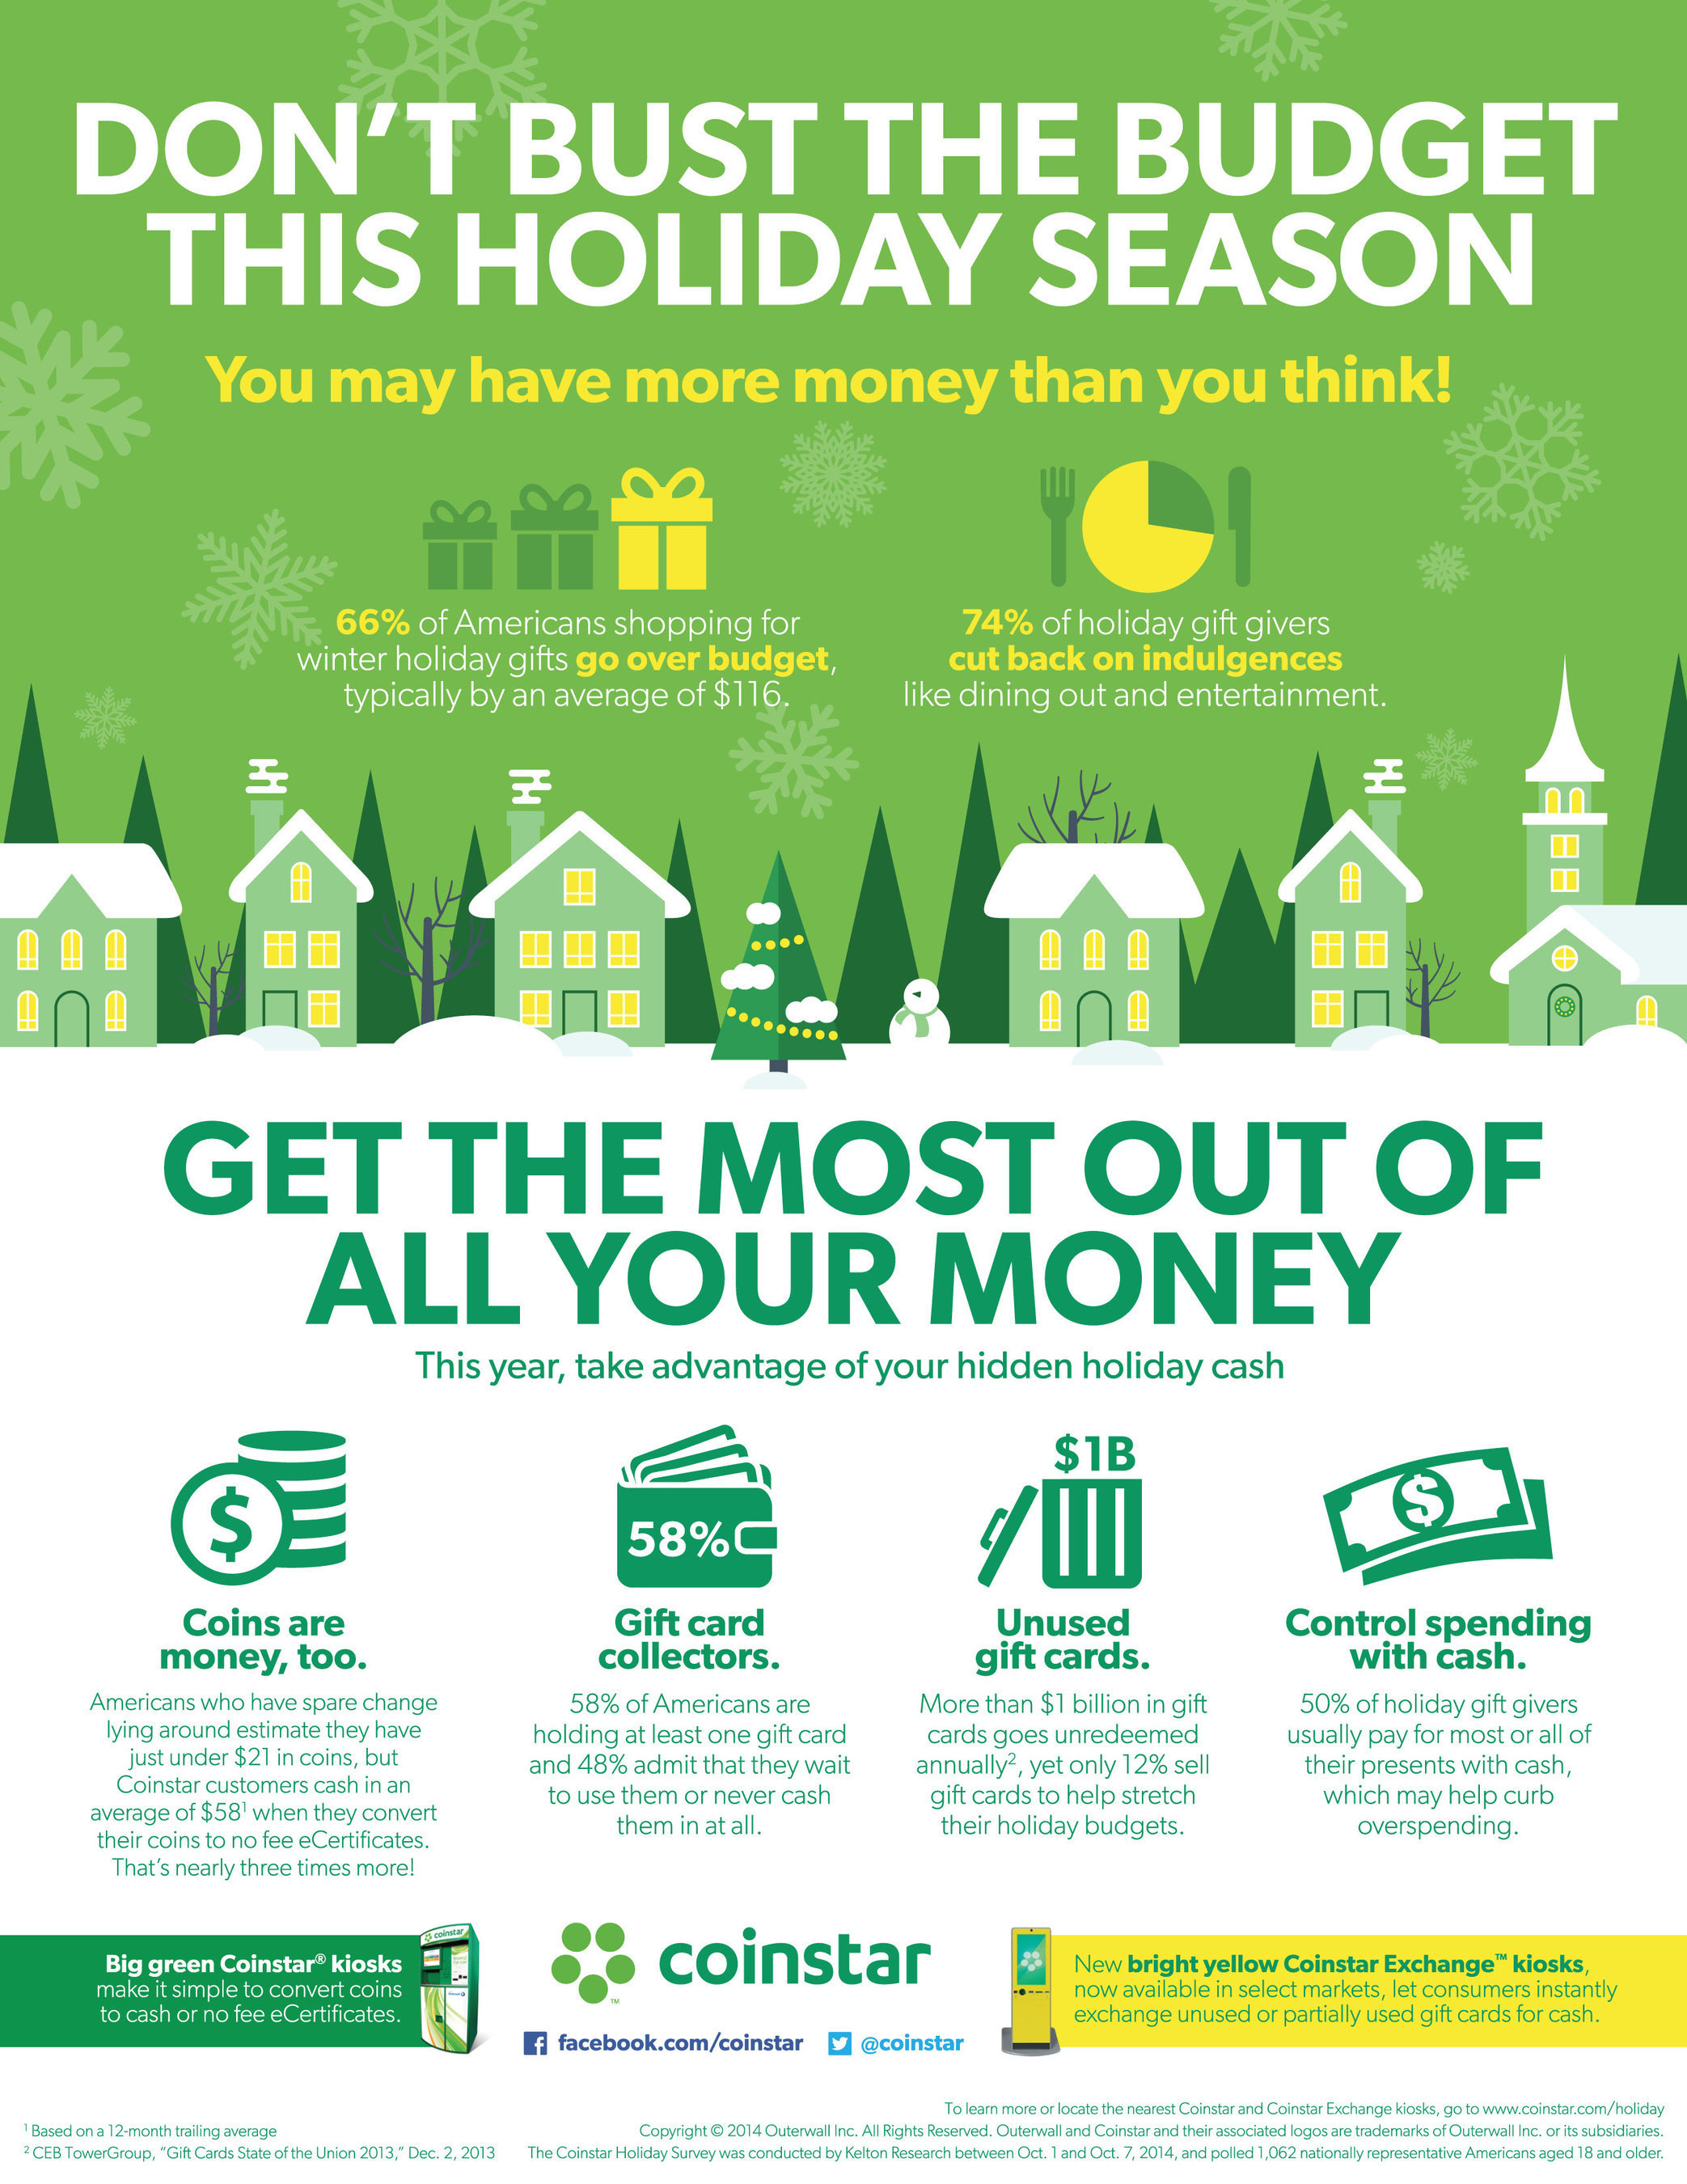 Don't bust the budget this holiday season! Consider Coinstar and Coinstar Exchange to get the most out of all your money.